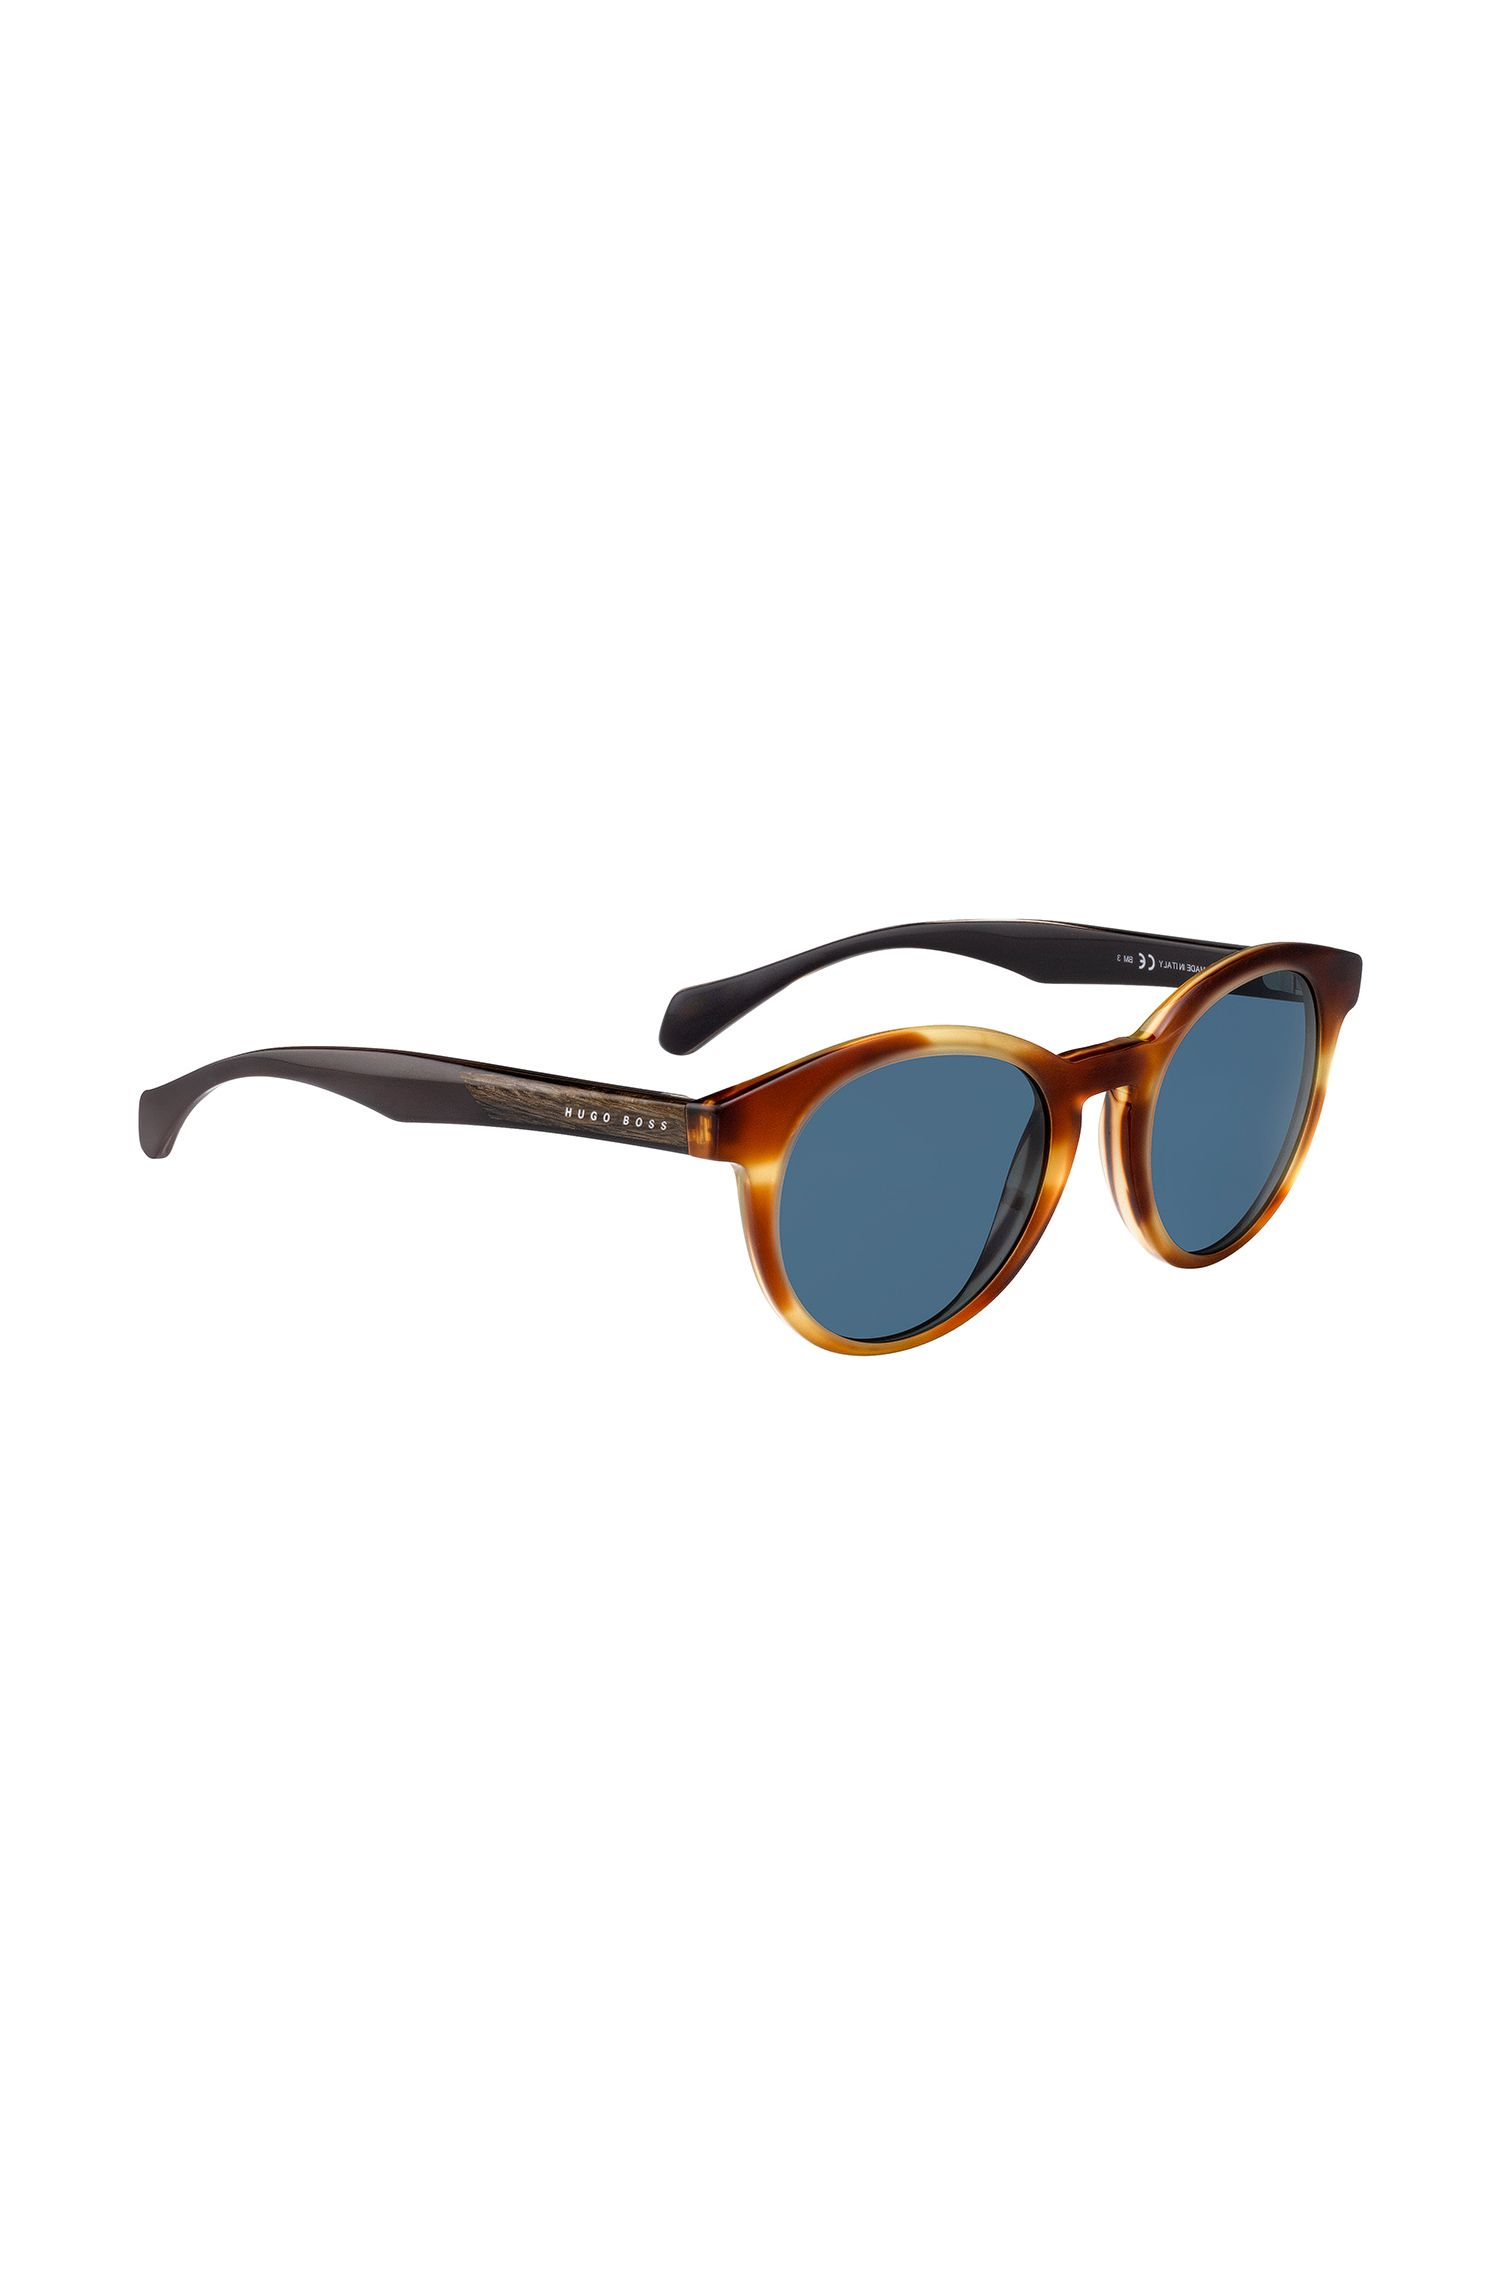 Round-framed sunglasses with wood trim